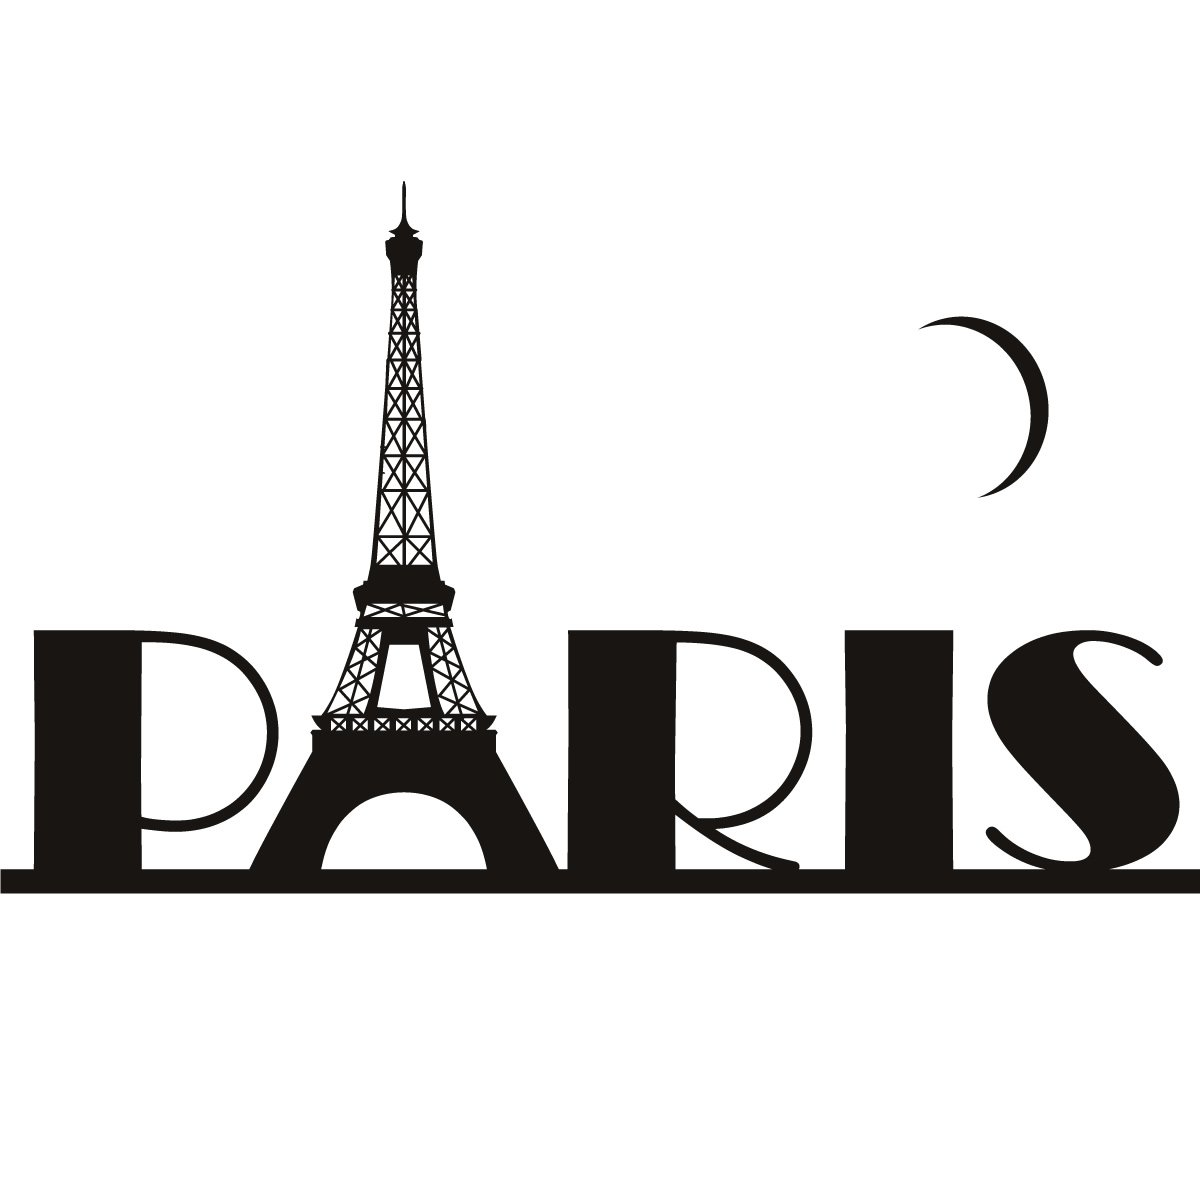 Paris Eiffel Tower France Wall Art Sticker Wall Decal Transfers   Ebay